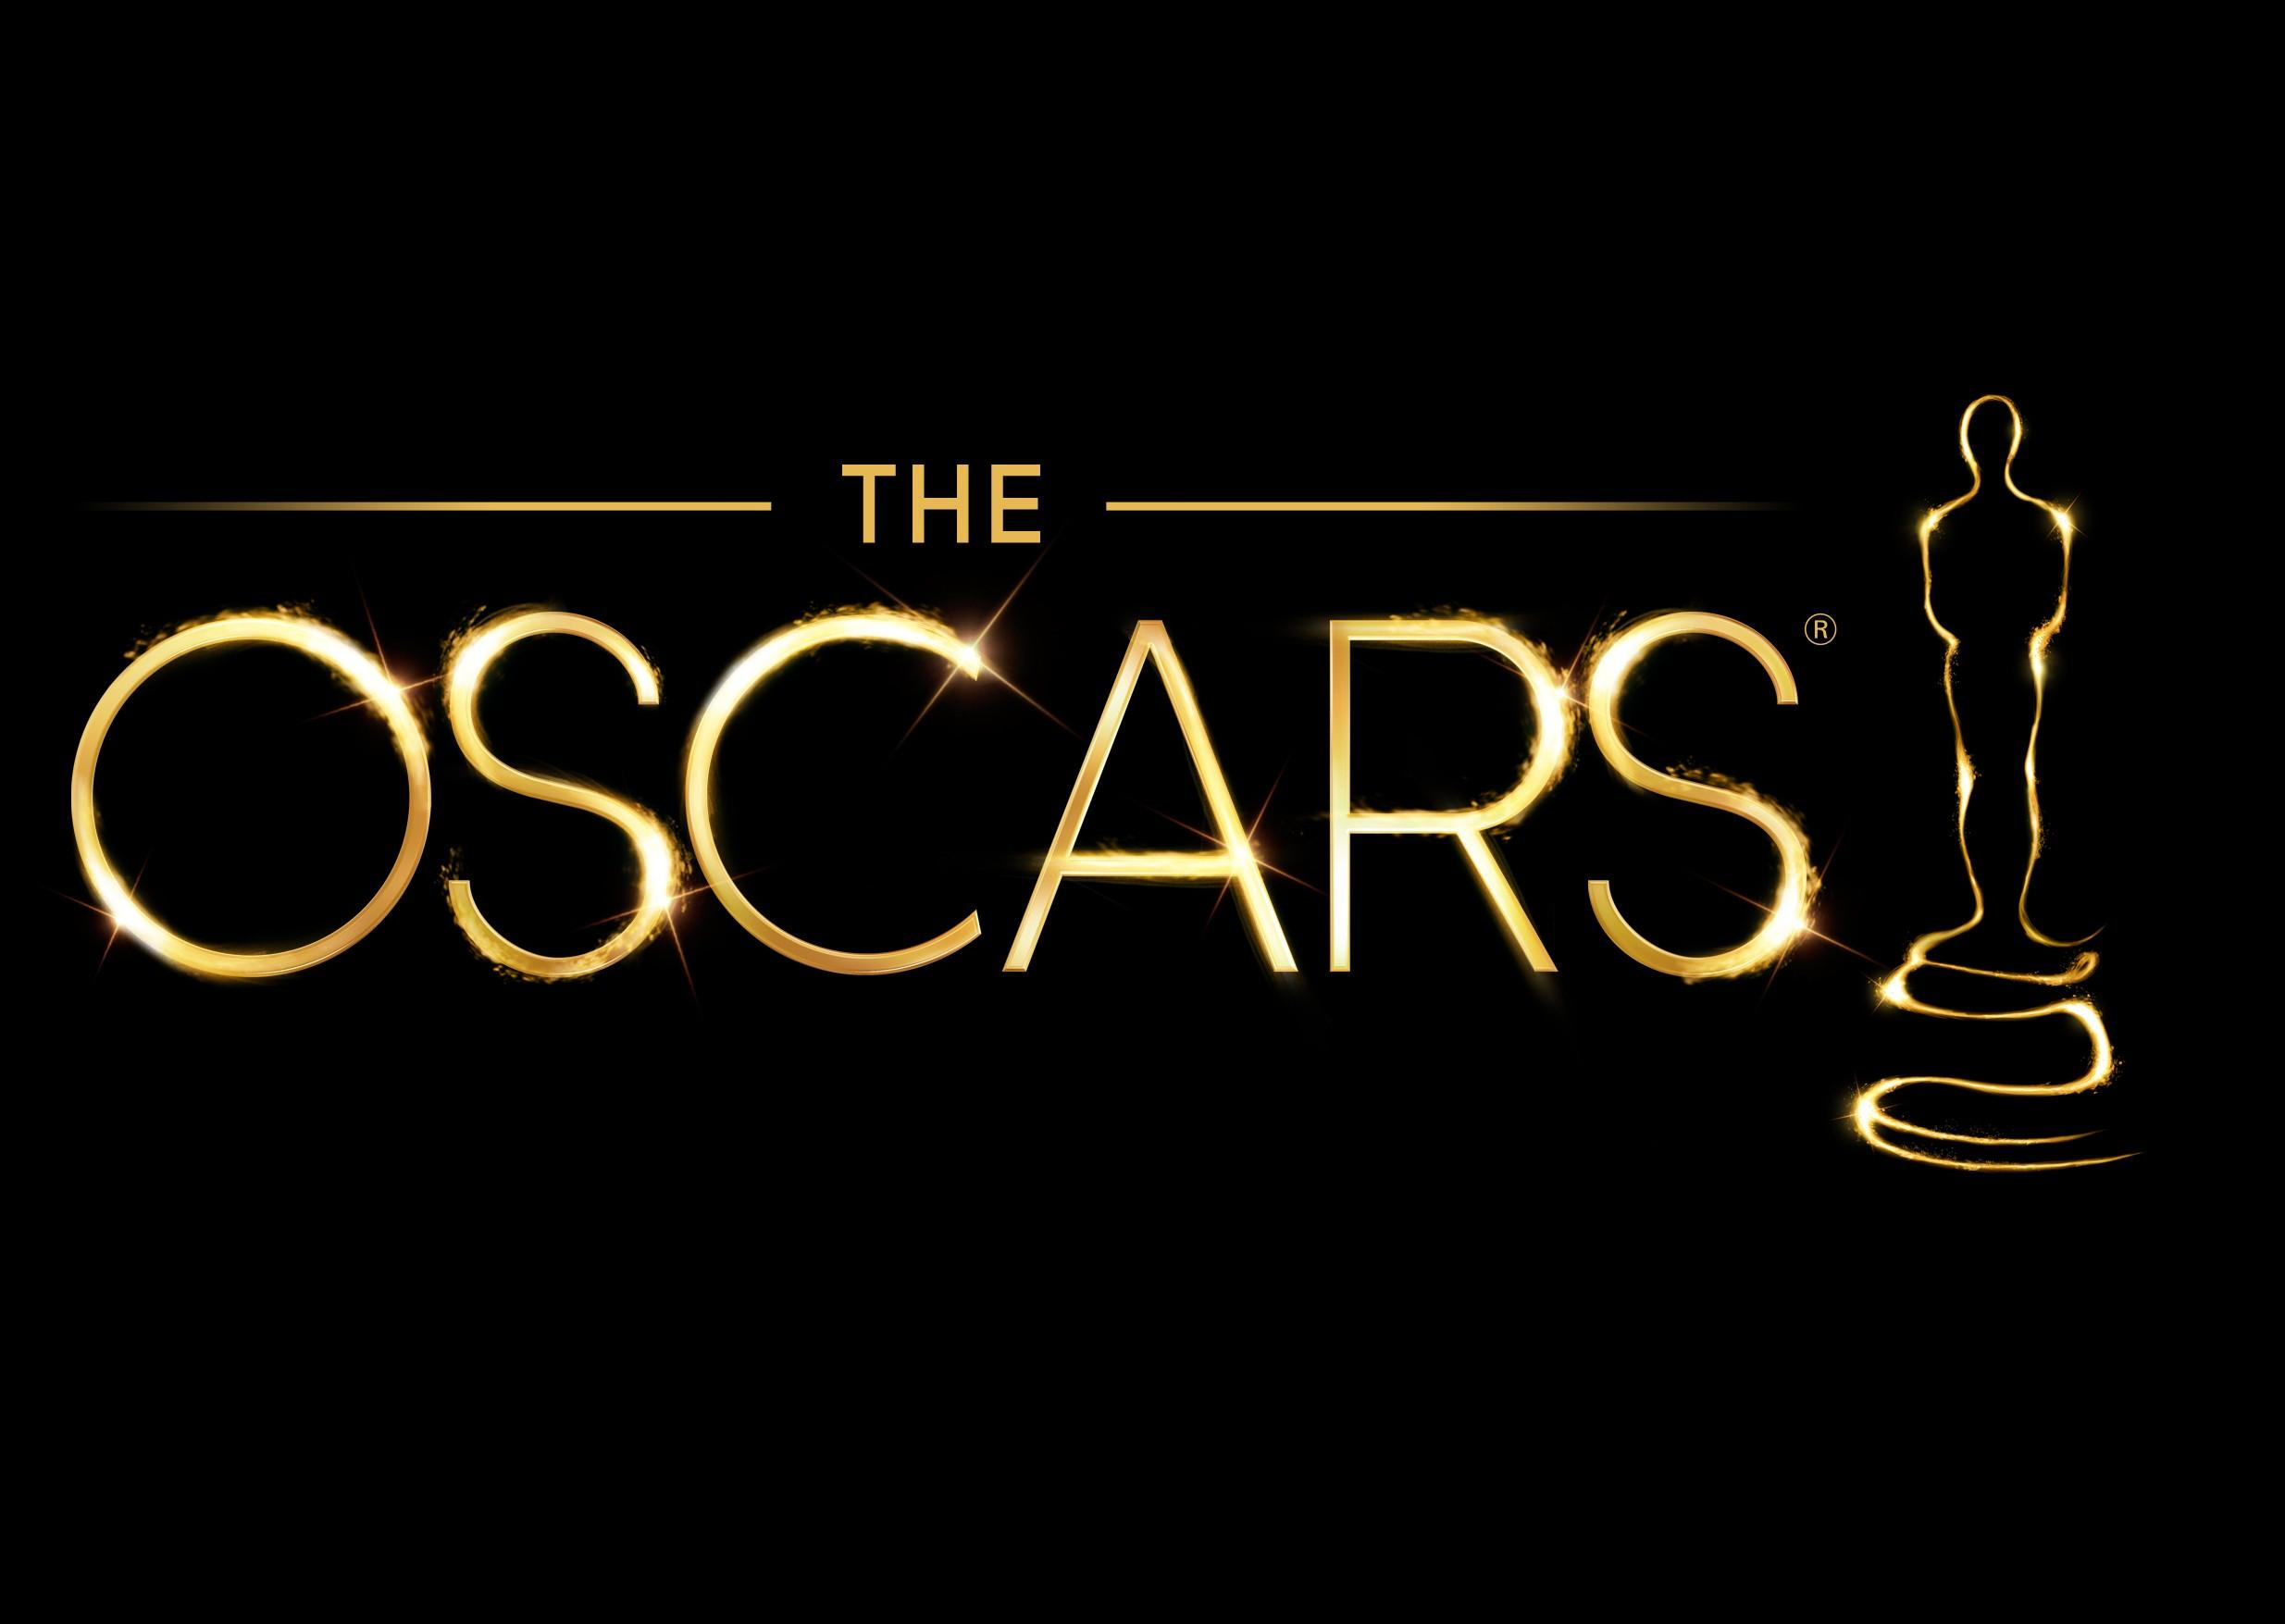 The 89th Academy Awards show will take place February 26, 2015. Hosted by Jimmy Kimmel, it is sure to be an enjoyable ceremony packed with surprises.